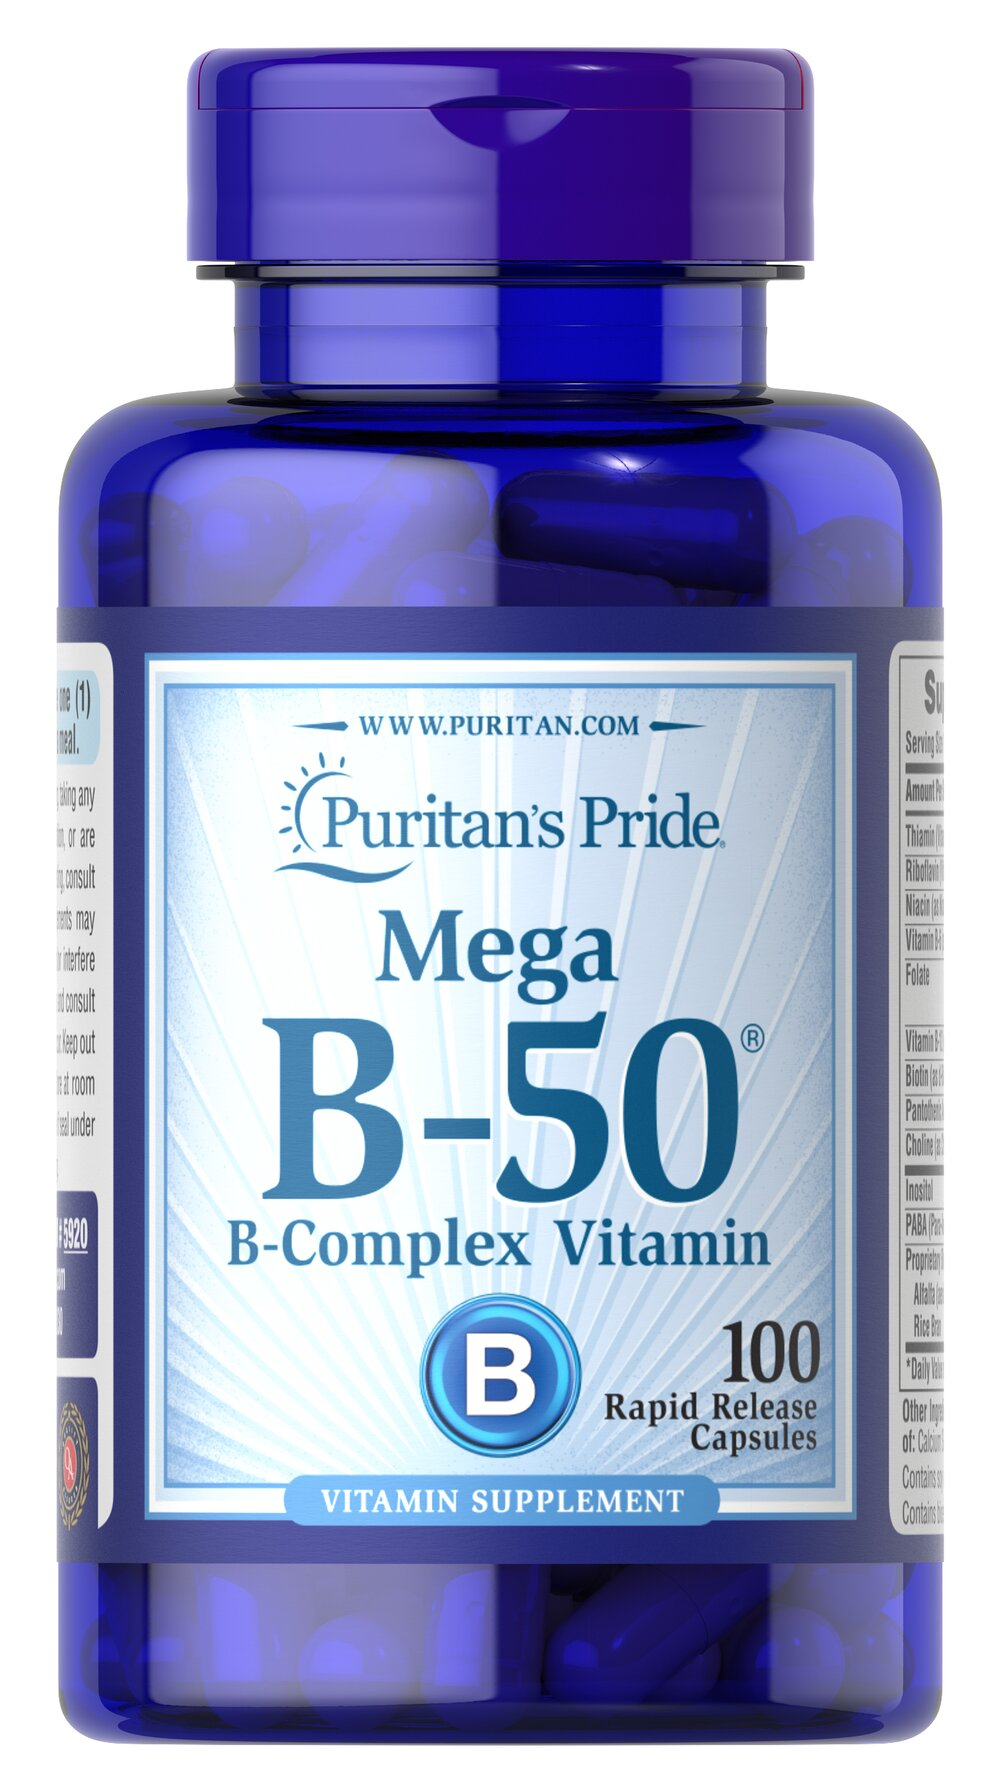 Vitamin B-50® Complex <p>The Vitamin B-50® Complex is made up of several vitamins that work well together to support nervous system health.** B Complex vitamins also promote energy metabolism.** Each nutrient in the Vitamin B Complex performs a unique role in maintaining proper metabolic functioning and is essential for well being.**</p> 100 Capsules 50 mg $12.78